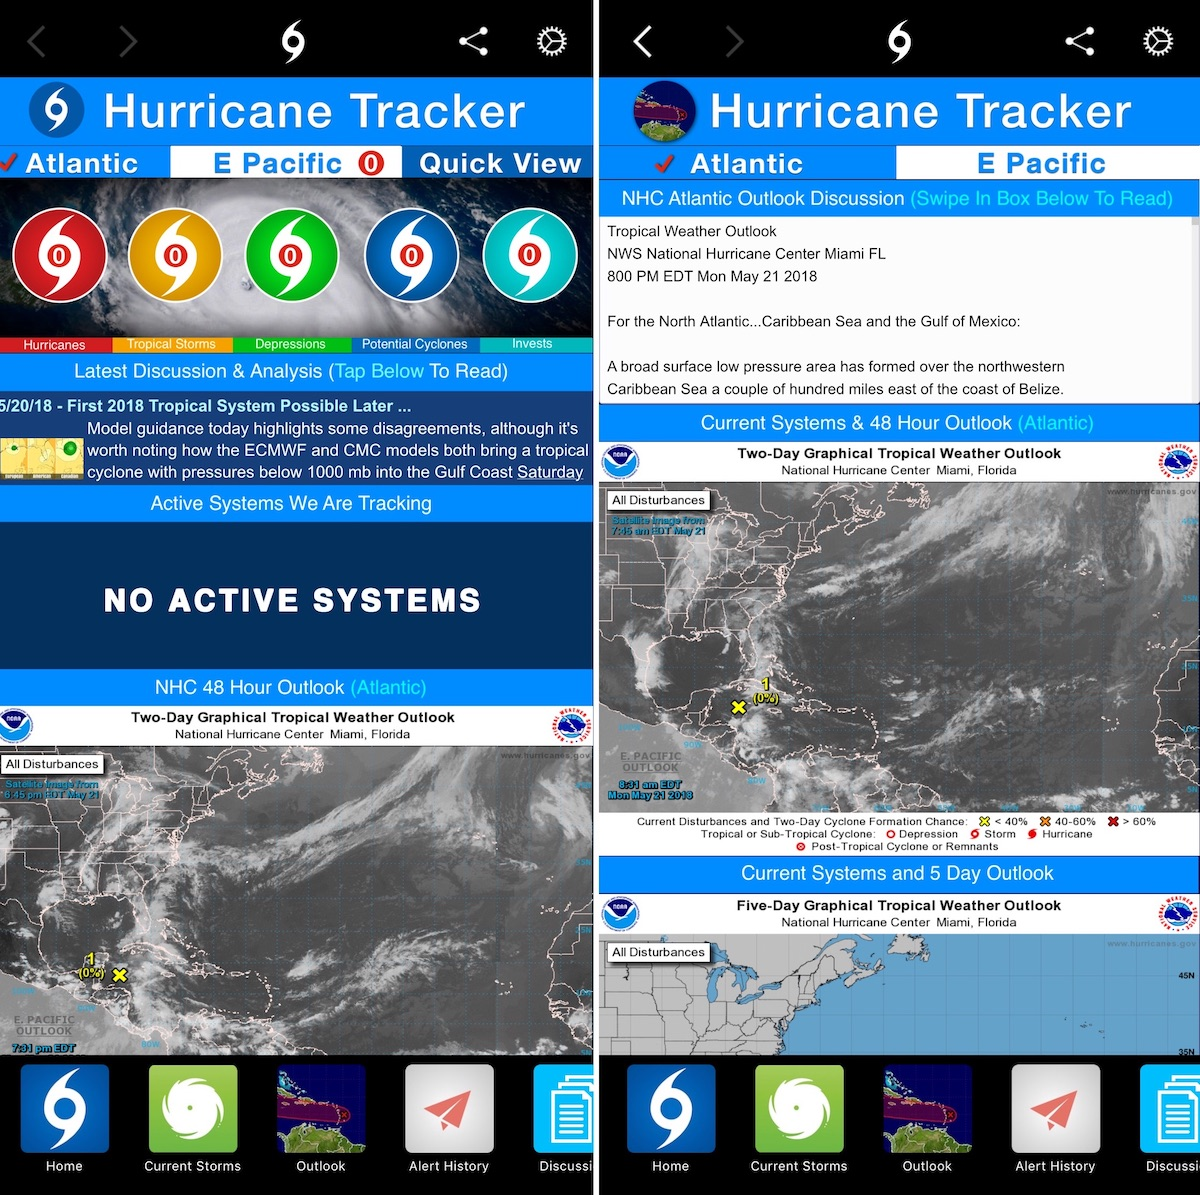 Tracking A Hurricane Worksheet Printable Worksheets And Activities For Teachers Parents Tutors And Homeschool Families